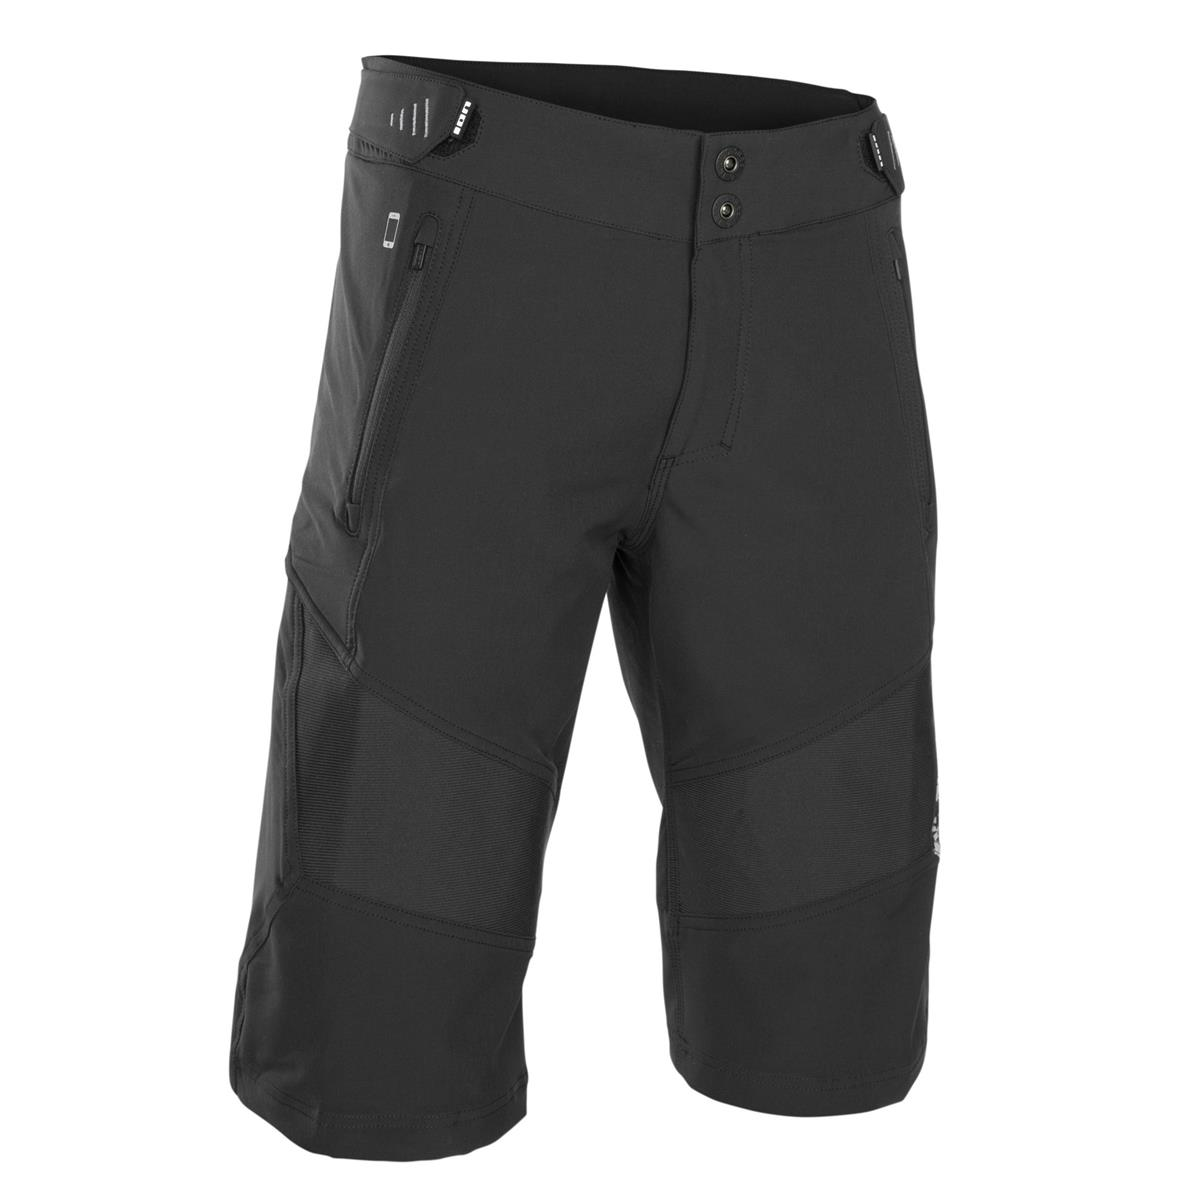 ION ION ION Freeride-Short Scrub Select Schwarz 5a5e56